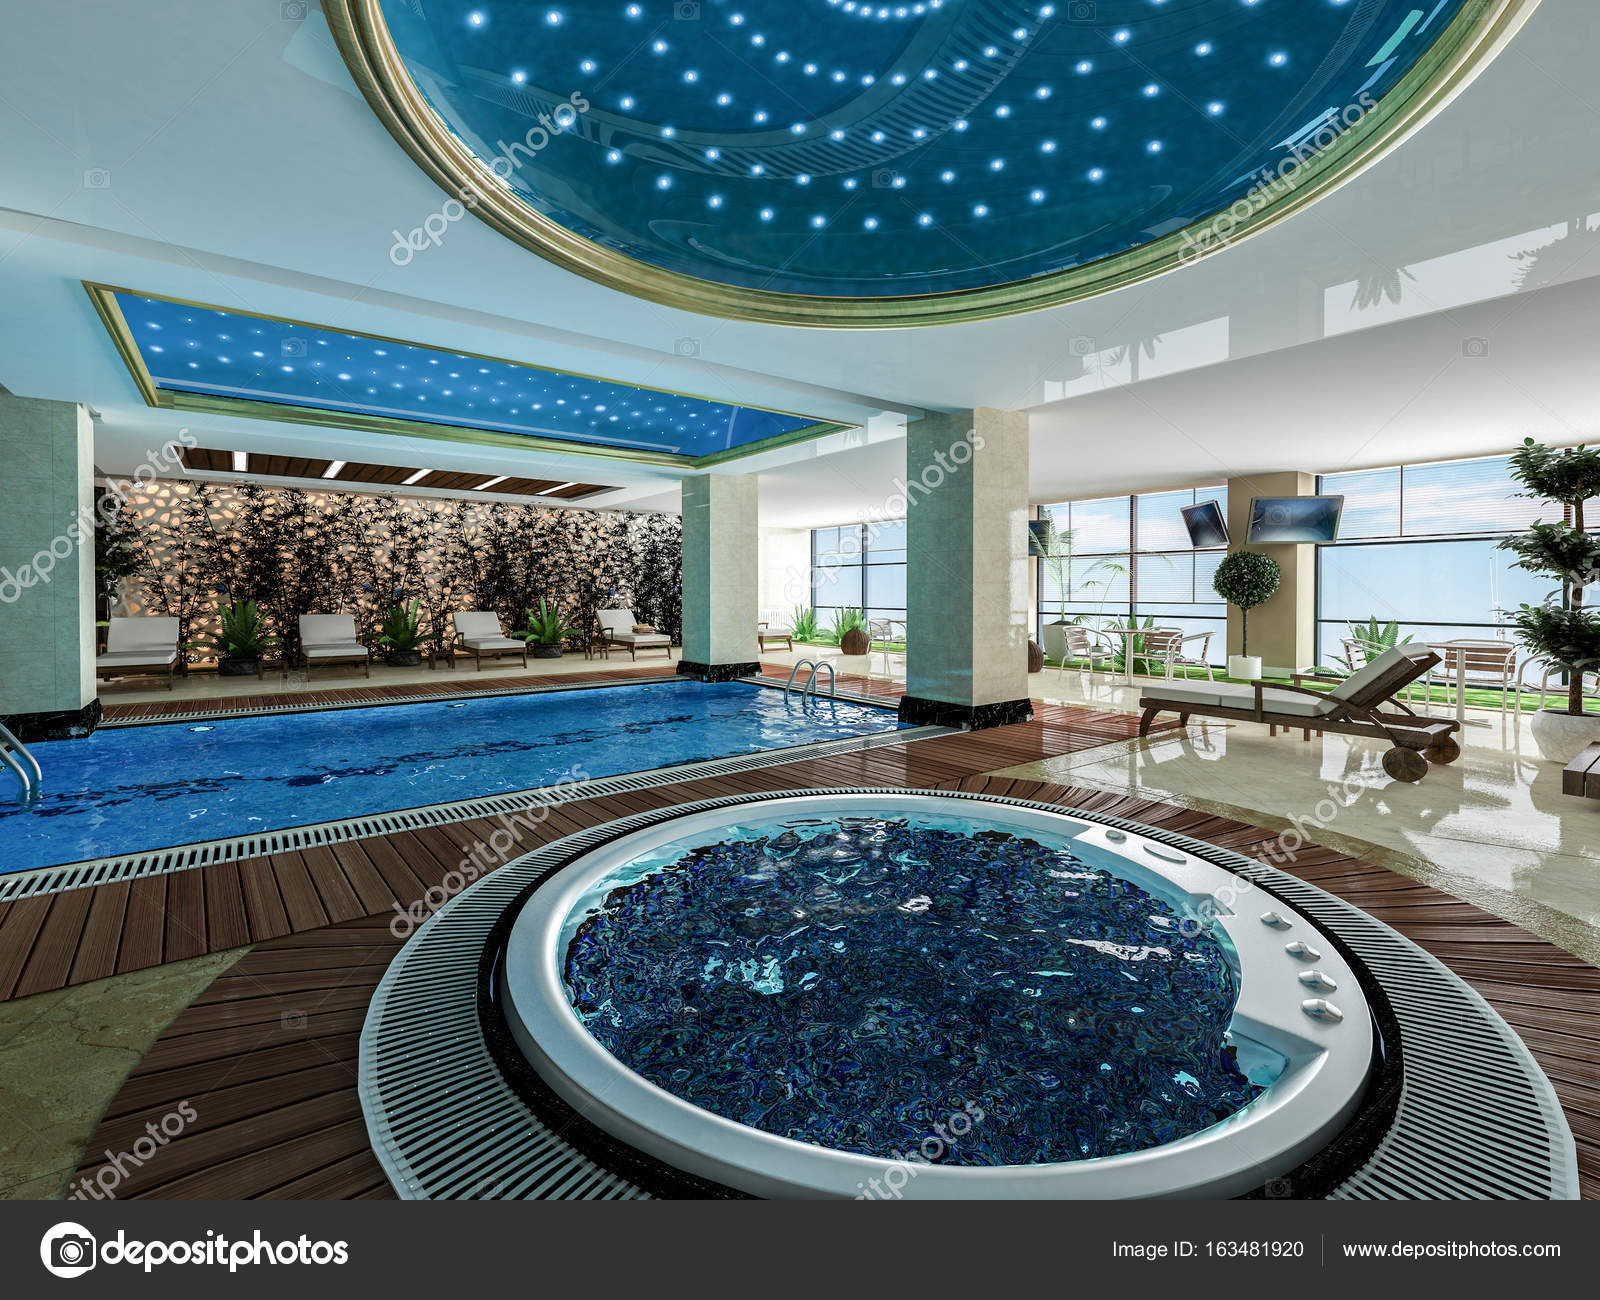 Pool And Jacuzzi Indoor Swimming Pool And Jacuzzi Design Idea Stock Photo